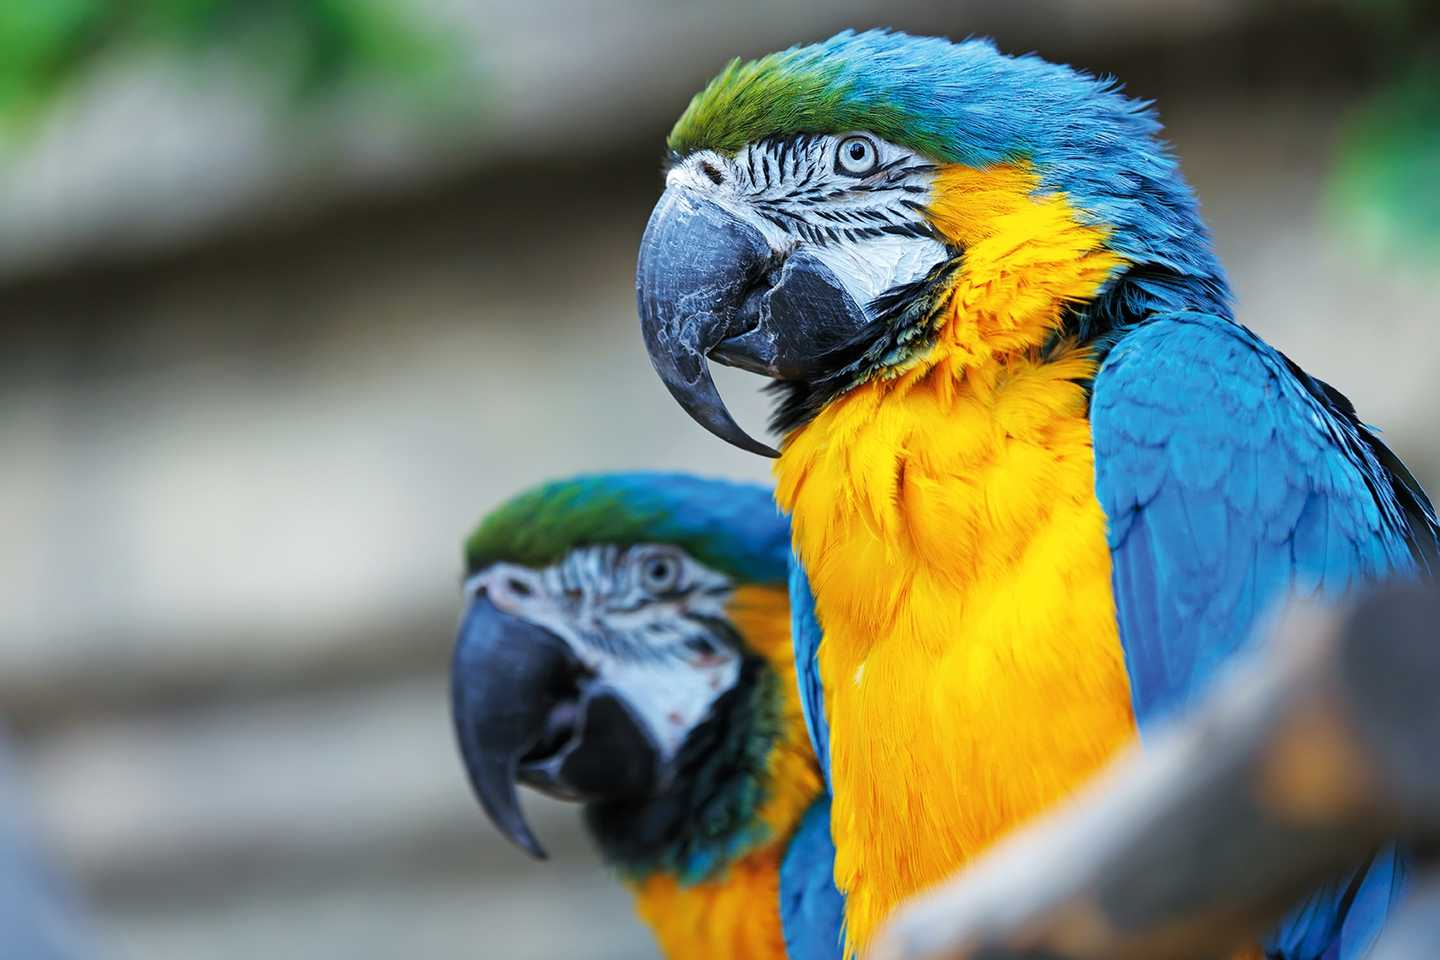 Two yellow blue and green parrots